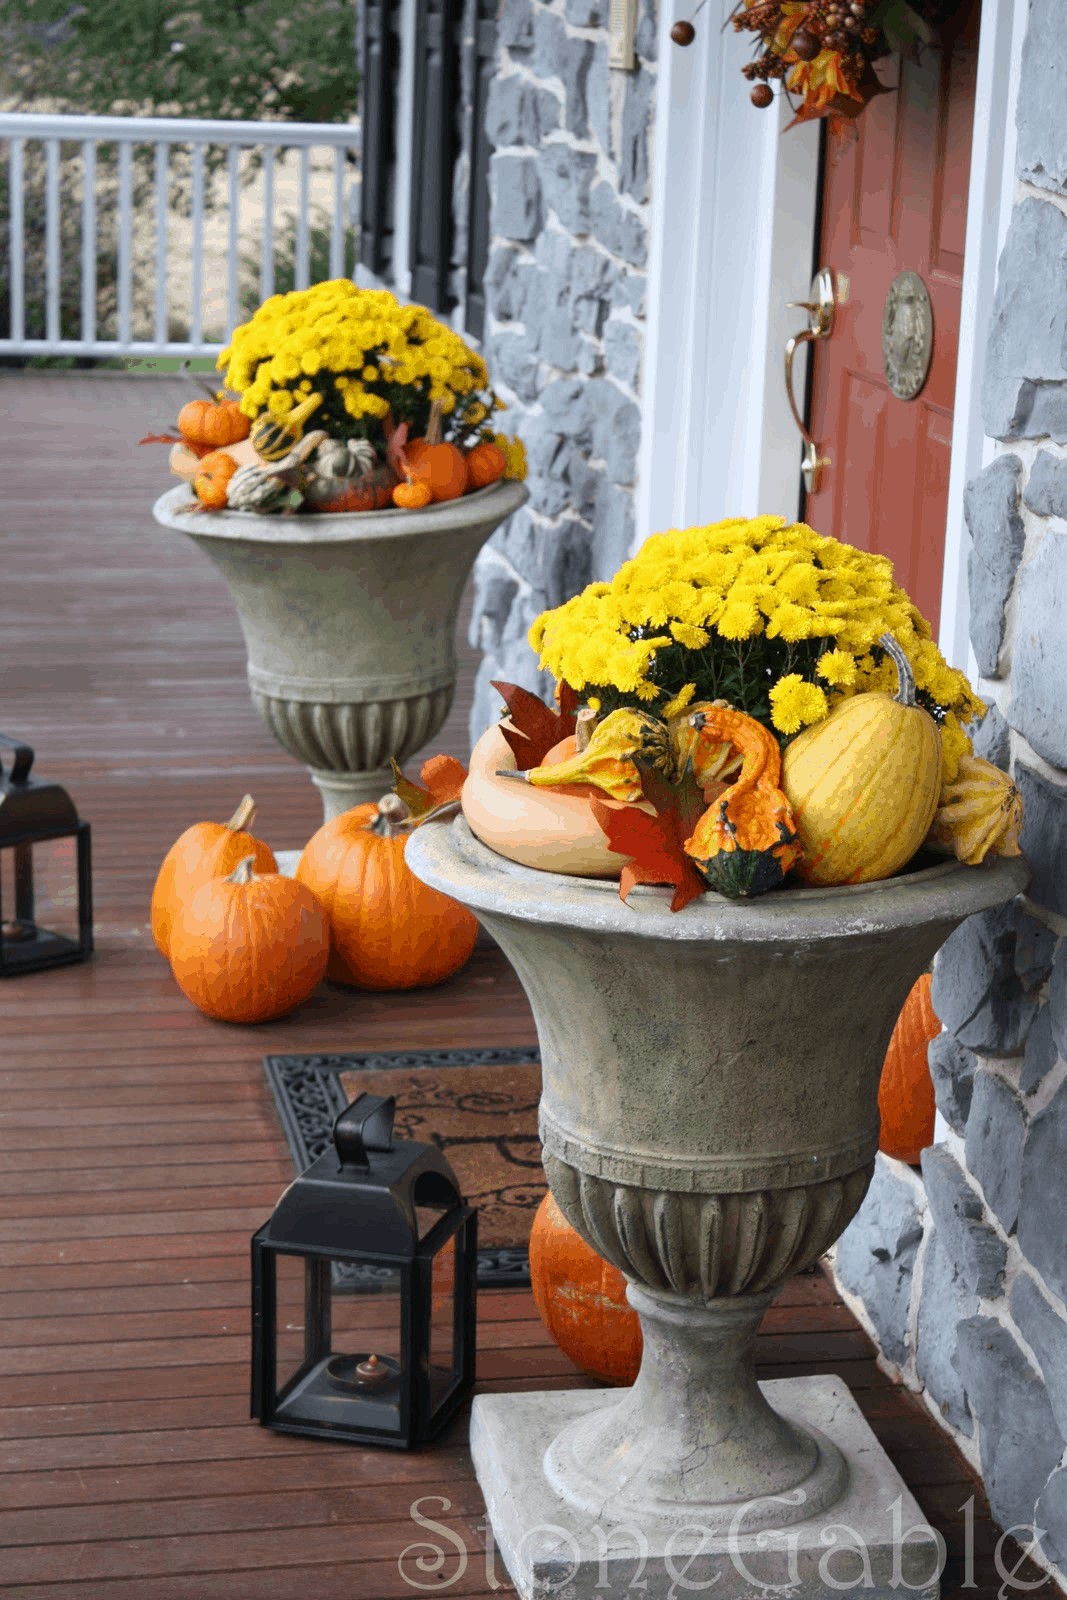 Stone pedestal planters filled with fall coloured flowers and gourds